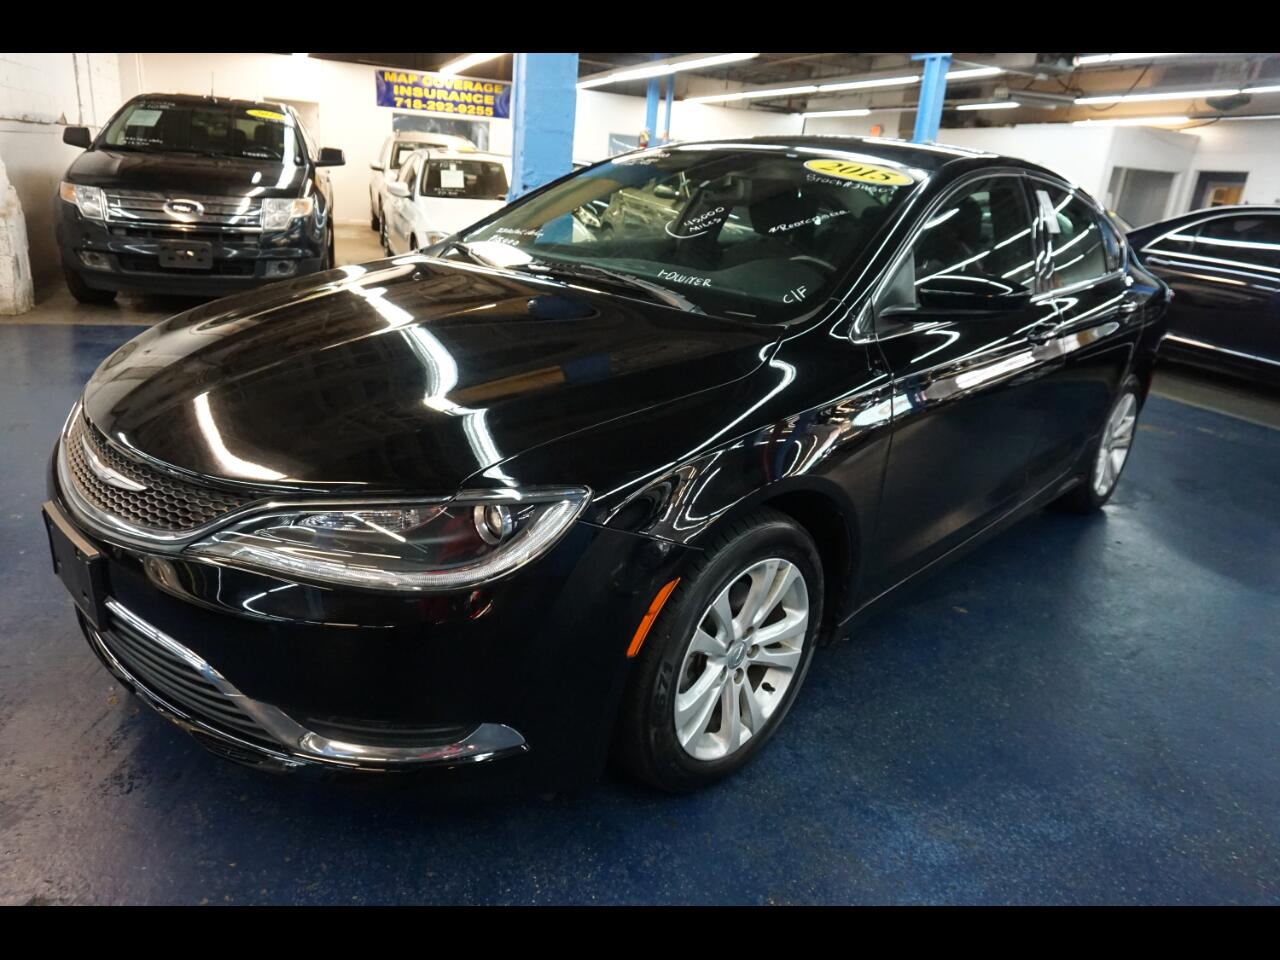 used 2015 chrysler 200 4dr sdn limited fwd for sale in bronx ny 10451 federal auctioneers. Black Bedroom Furniture Sets. Home Design Ideas